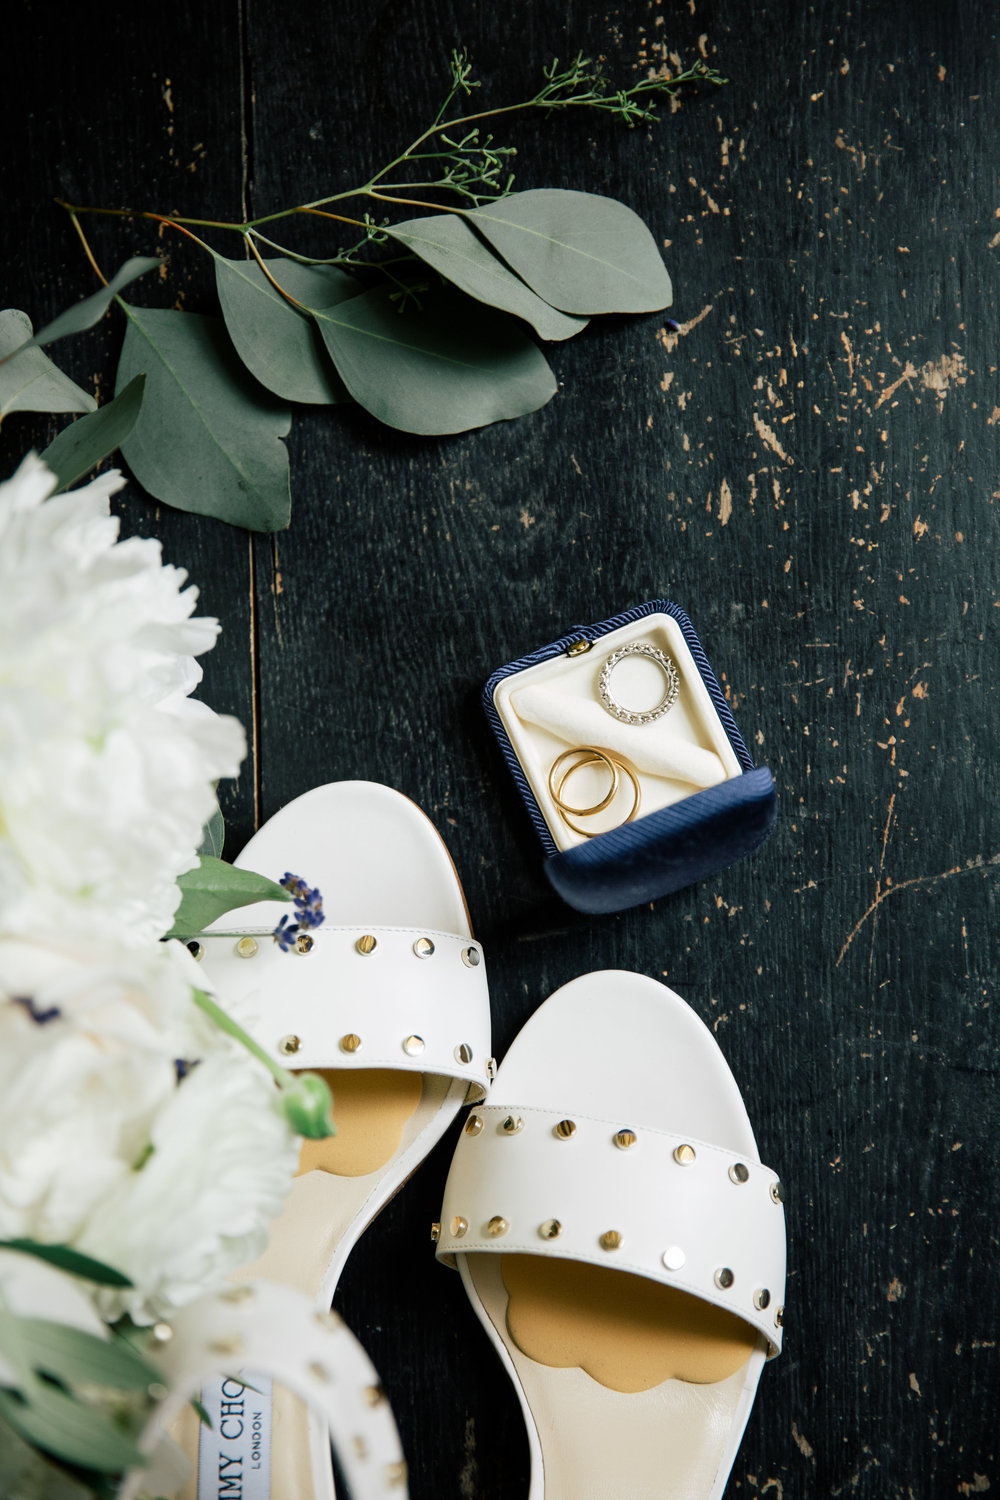 The rings and bride's shoes